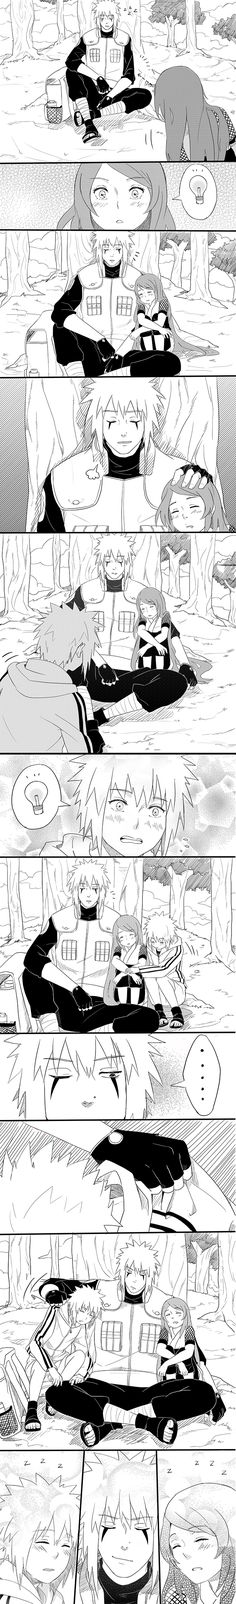 I love how he just picks up Minato like a Wolf picking up her pup and then sets him down on the OTHER side